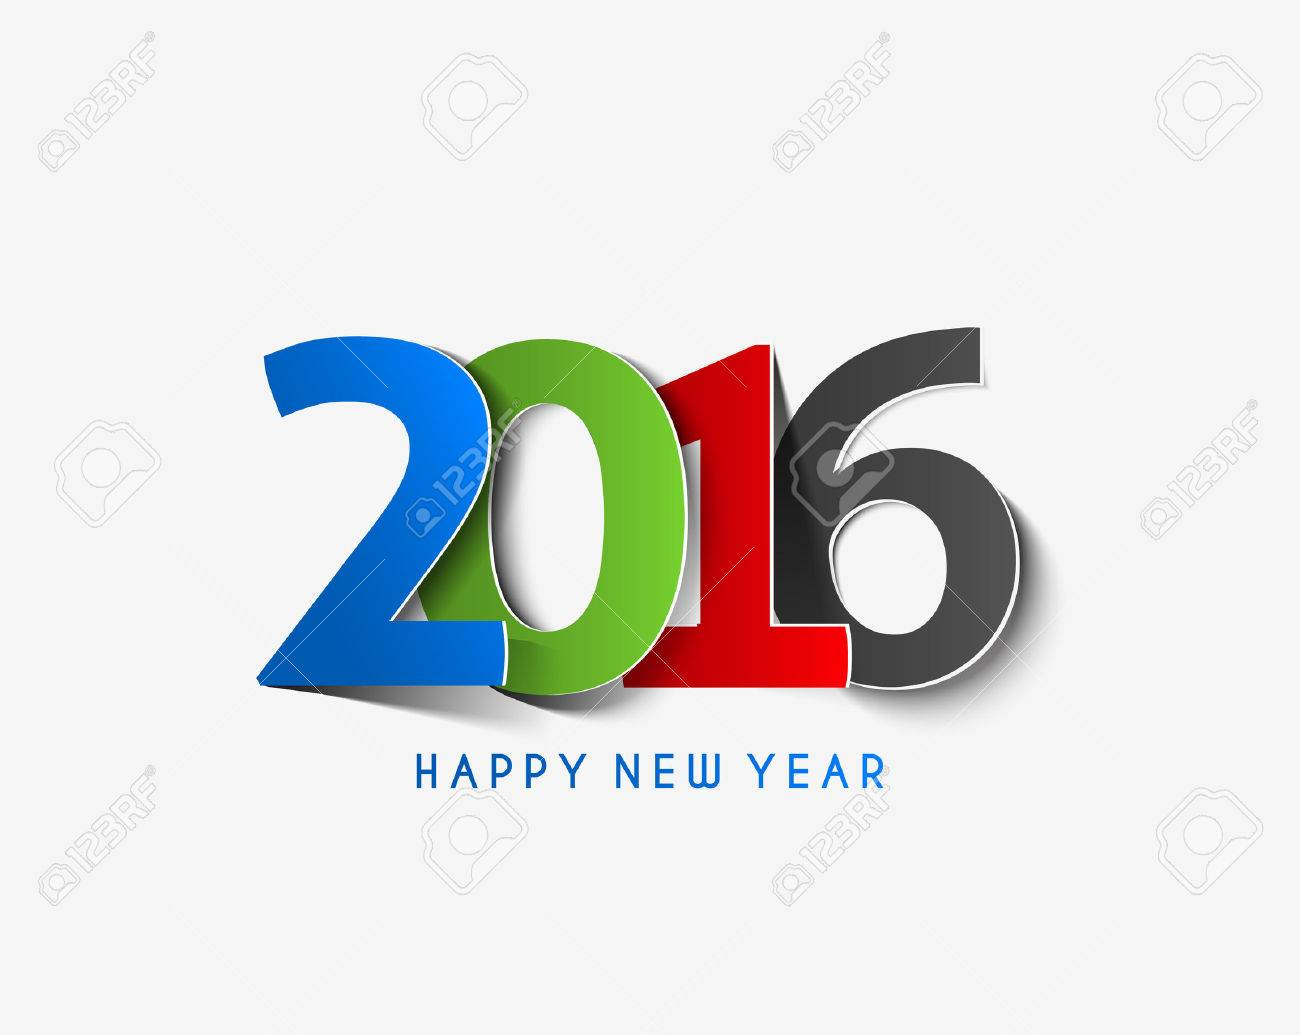 Happy new year 2016 Text Design Stock Vector - 47382863